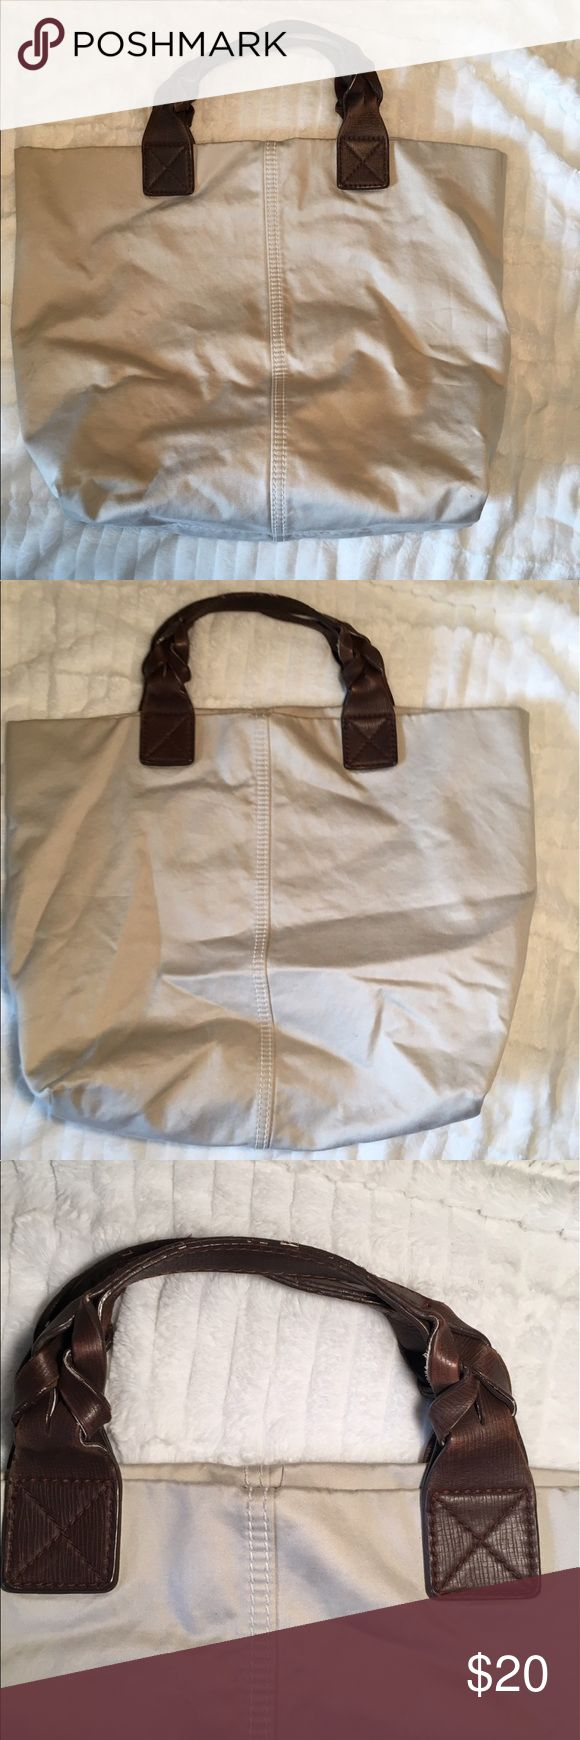 Gap tote in taupe/cream color Casual tote in a cream/taupe color. The inside has two pockets on one side and a zip up pocket on the other side. Some marks shown in pictures. GAP Bags Totes